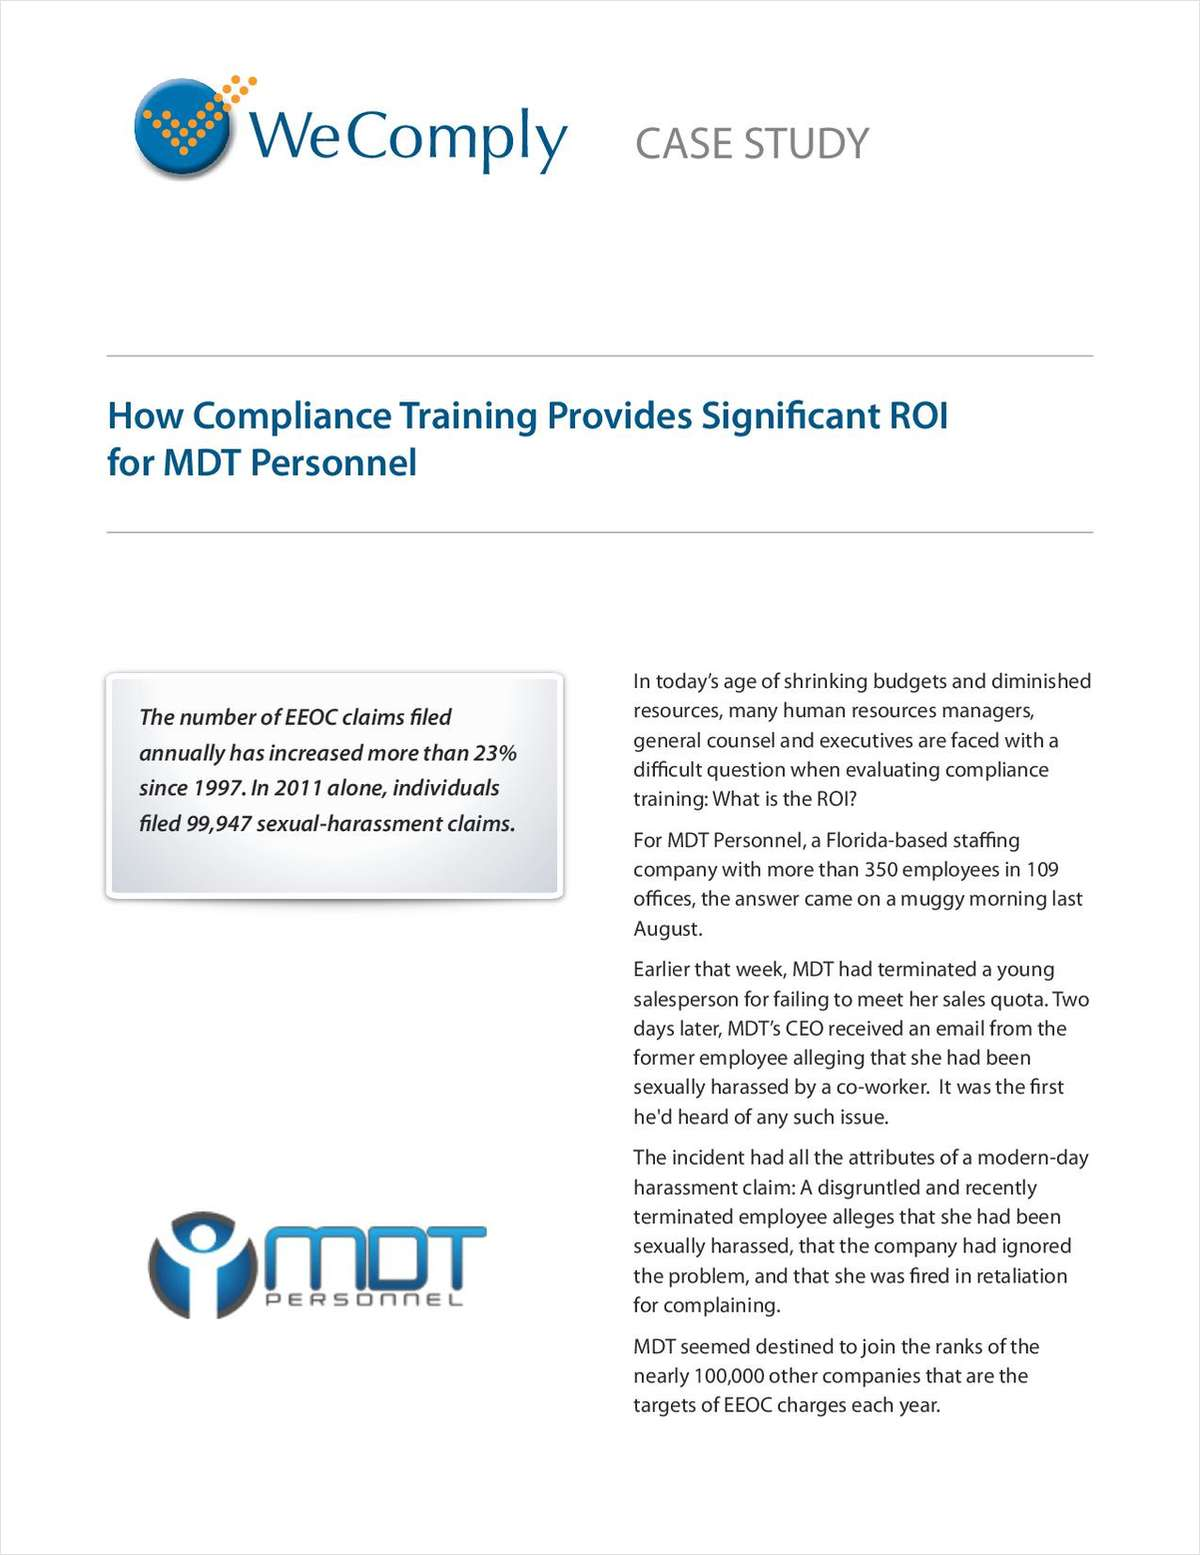 Receive your complimentary Compliance Training ROI case study today!